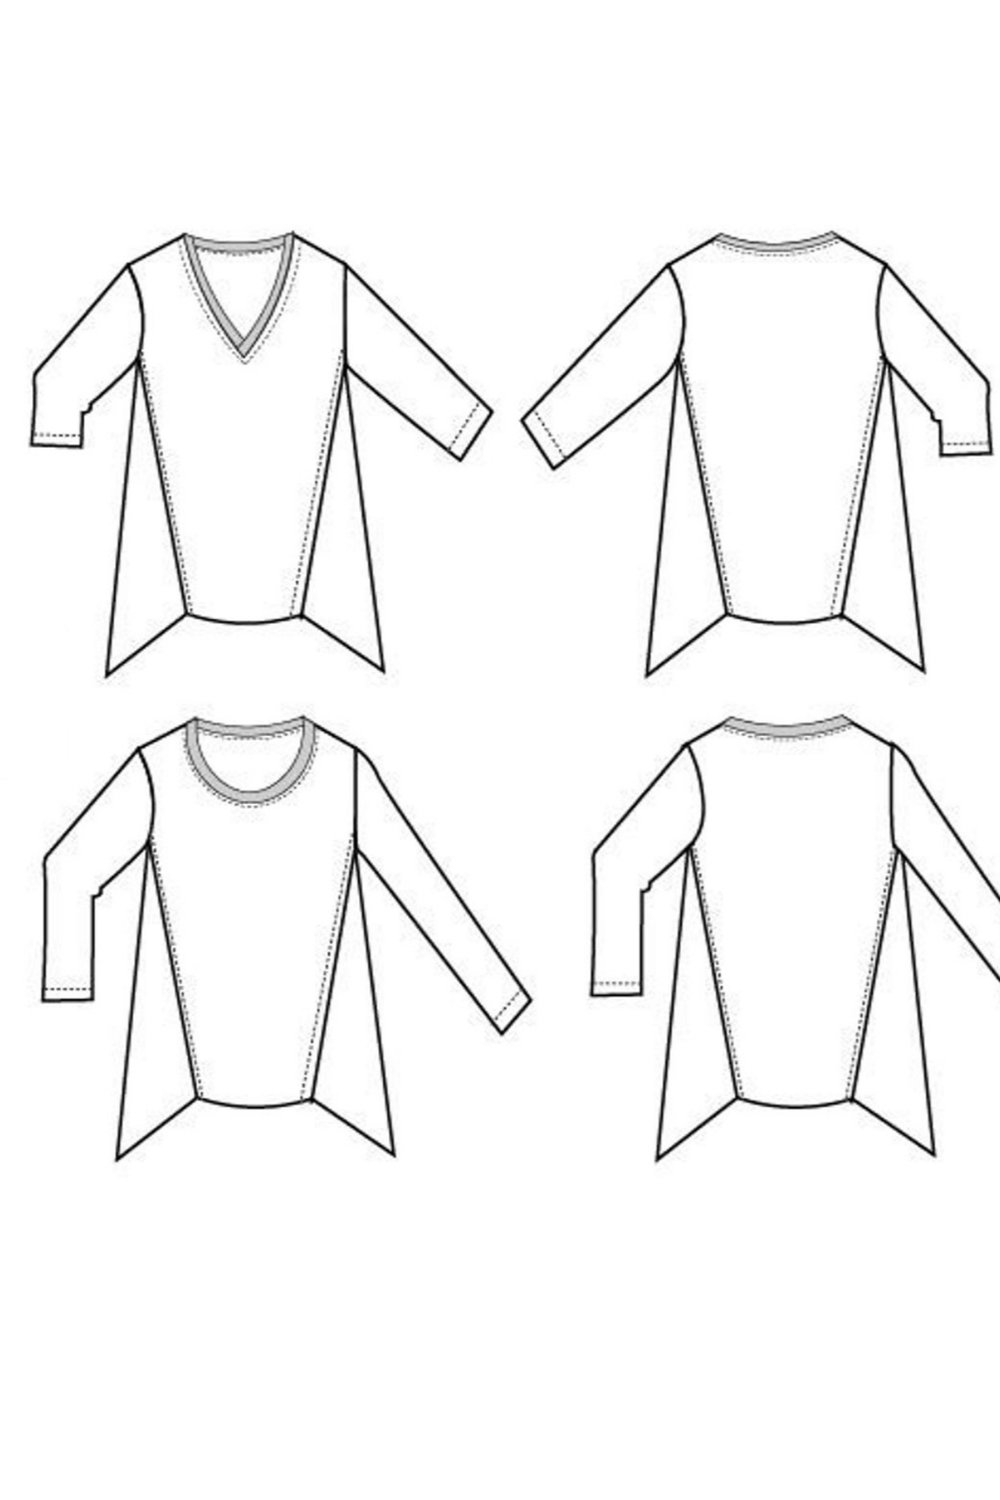 Debbie knit top sewing pattern from DG Patterns